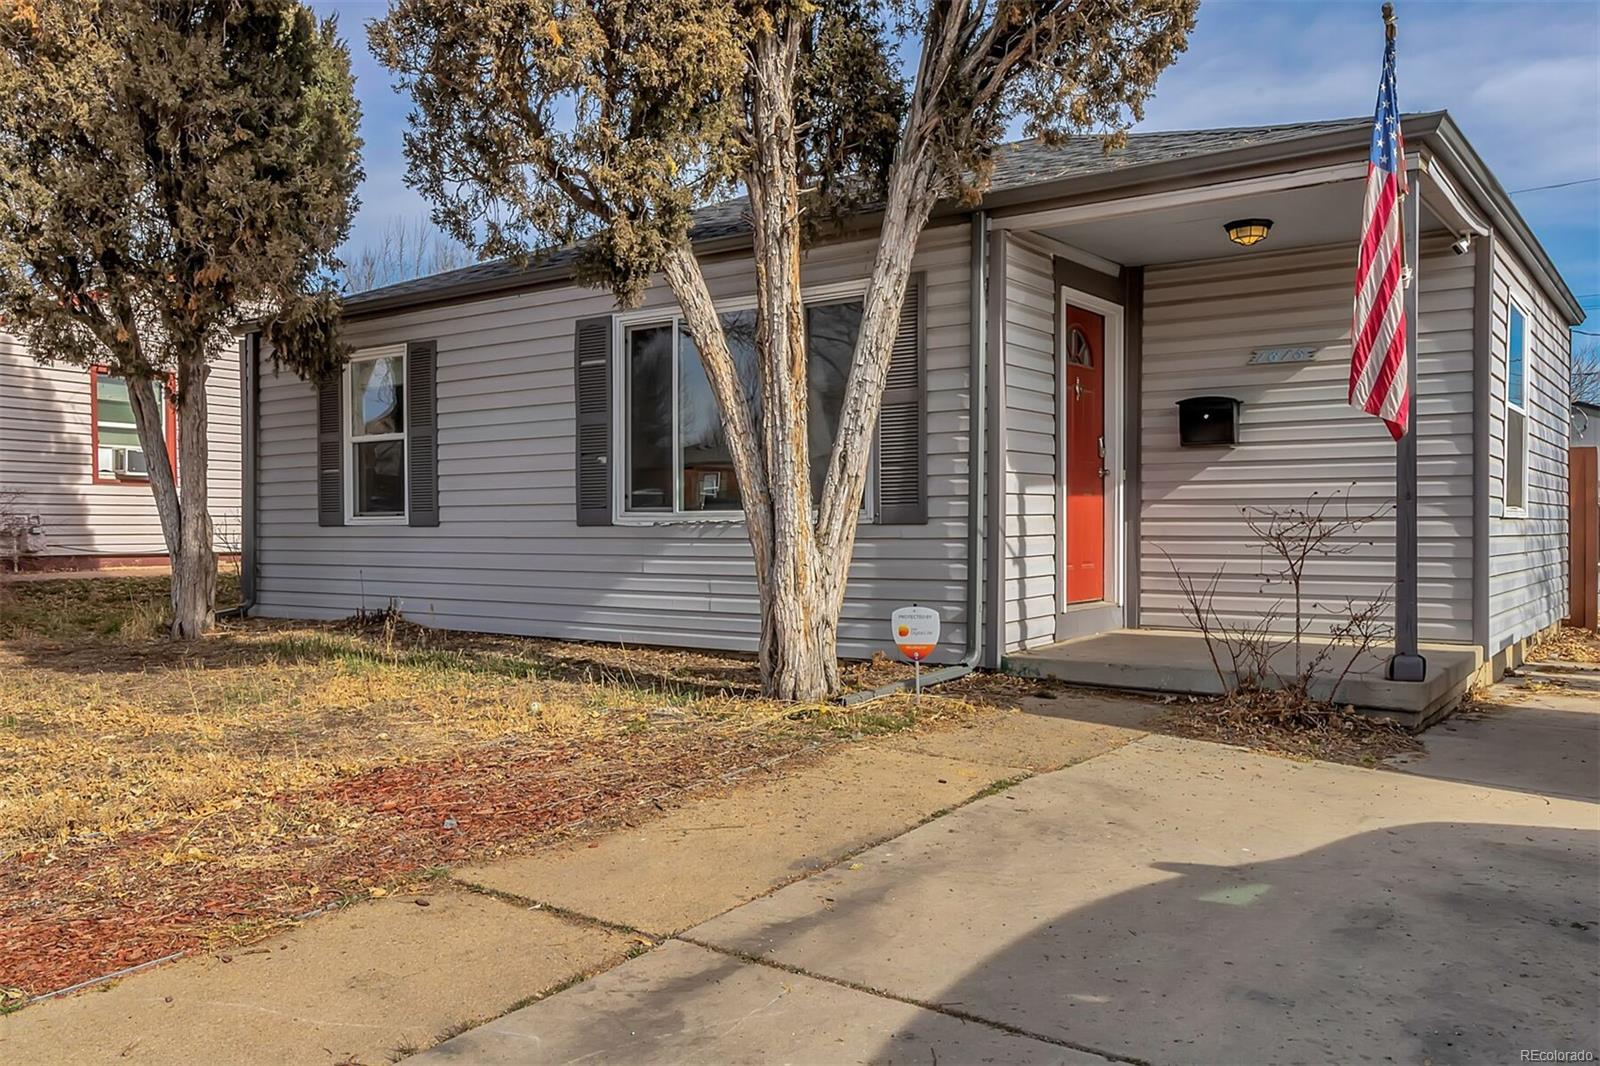 1815 W 51st Ave - $345,0002 beds, 1 bath764 sqftFirst Time HomebuyersNo Fireplace or ChimneyOh Hell No to the Crawl SpaceBackyard perfect for Cider Drinking